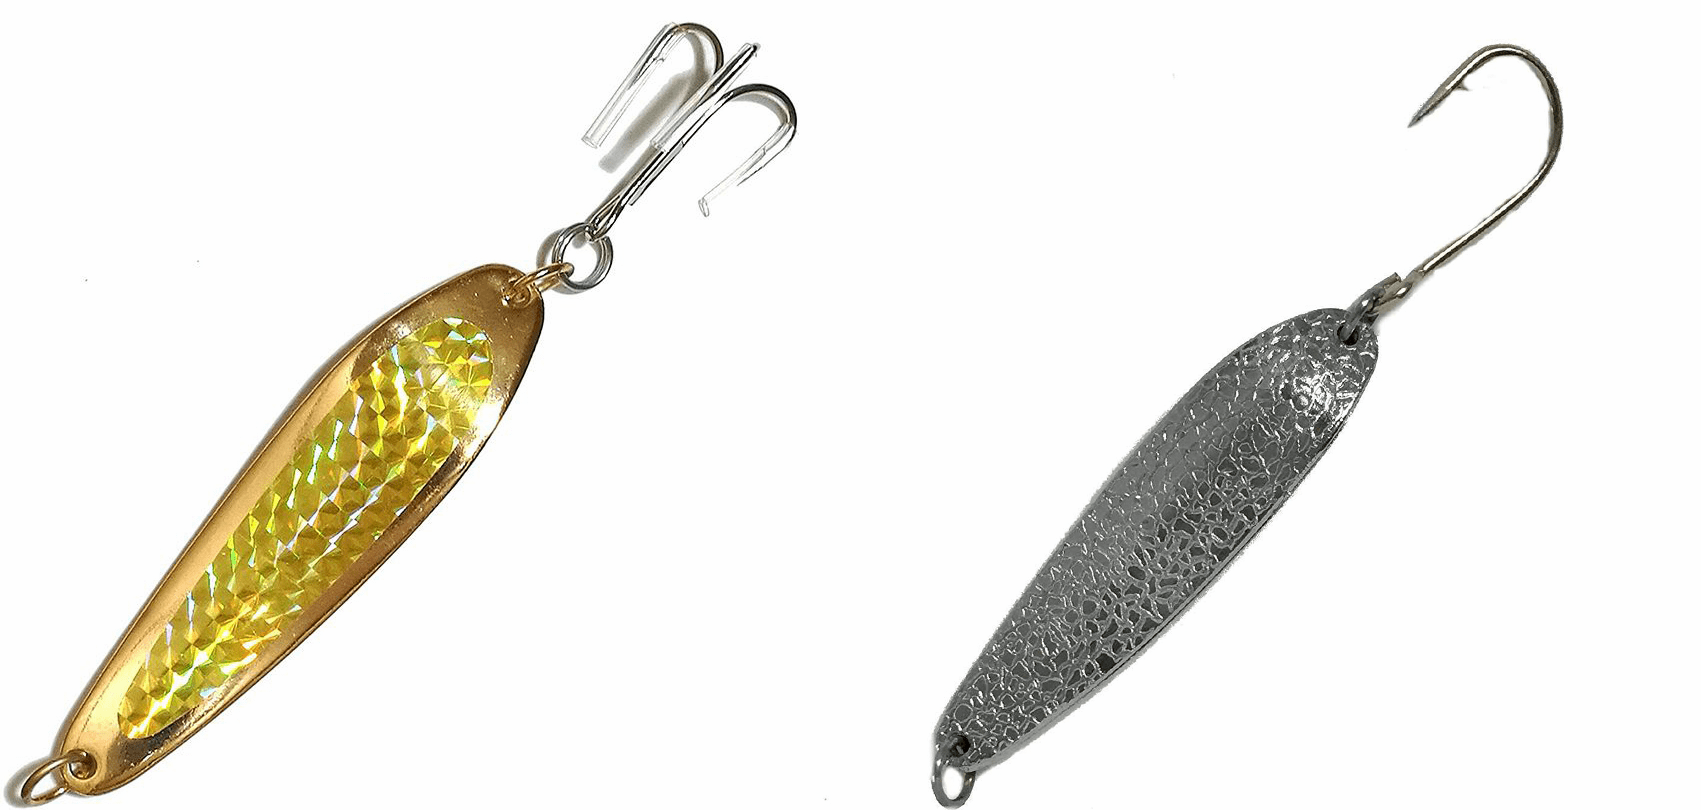 Crocodile Spoons